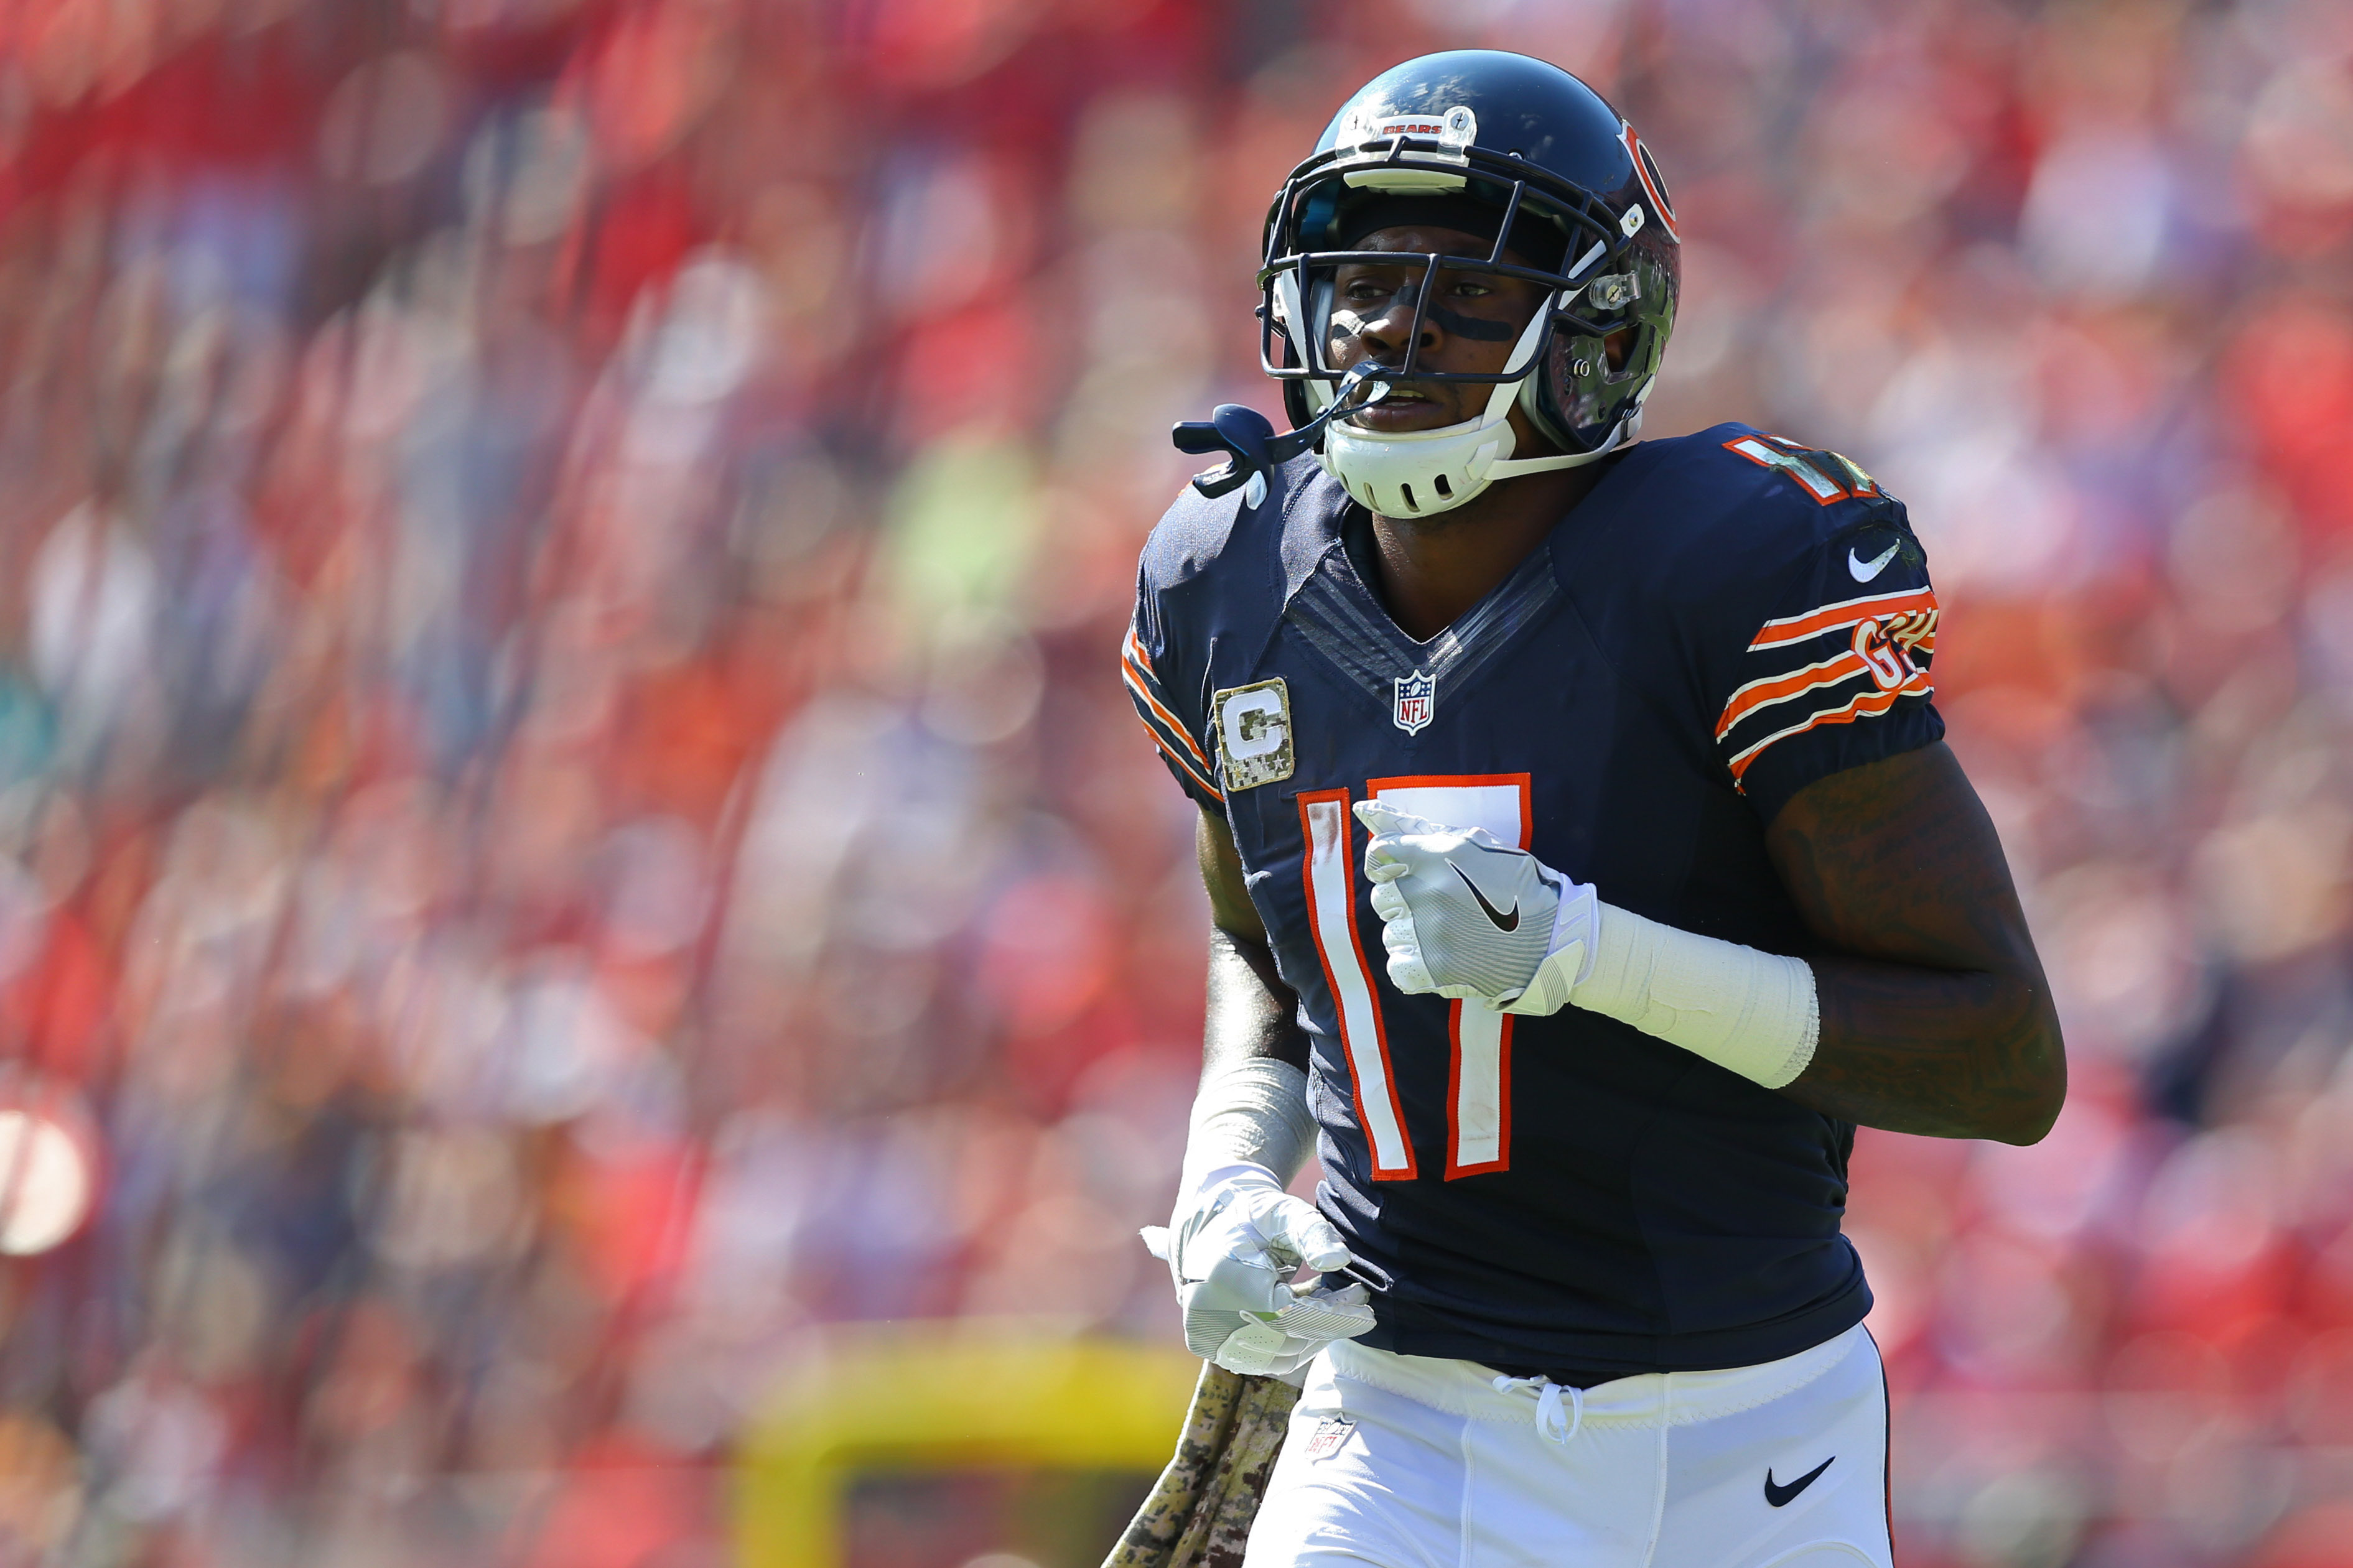 9683160-nfl-chicago-bears-at-tampa-bay-buccaneers-1